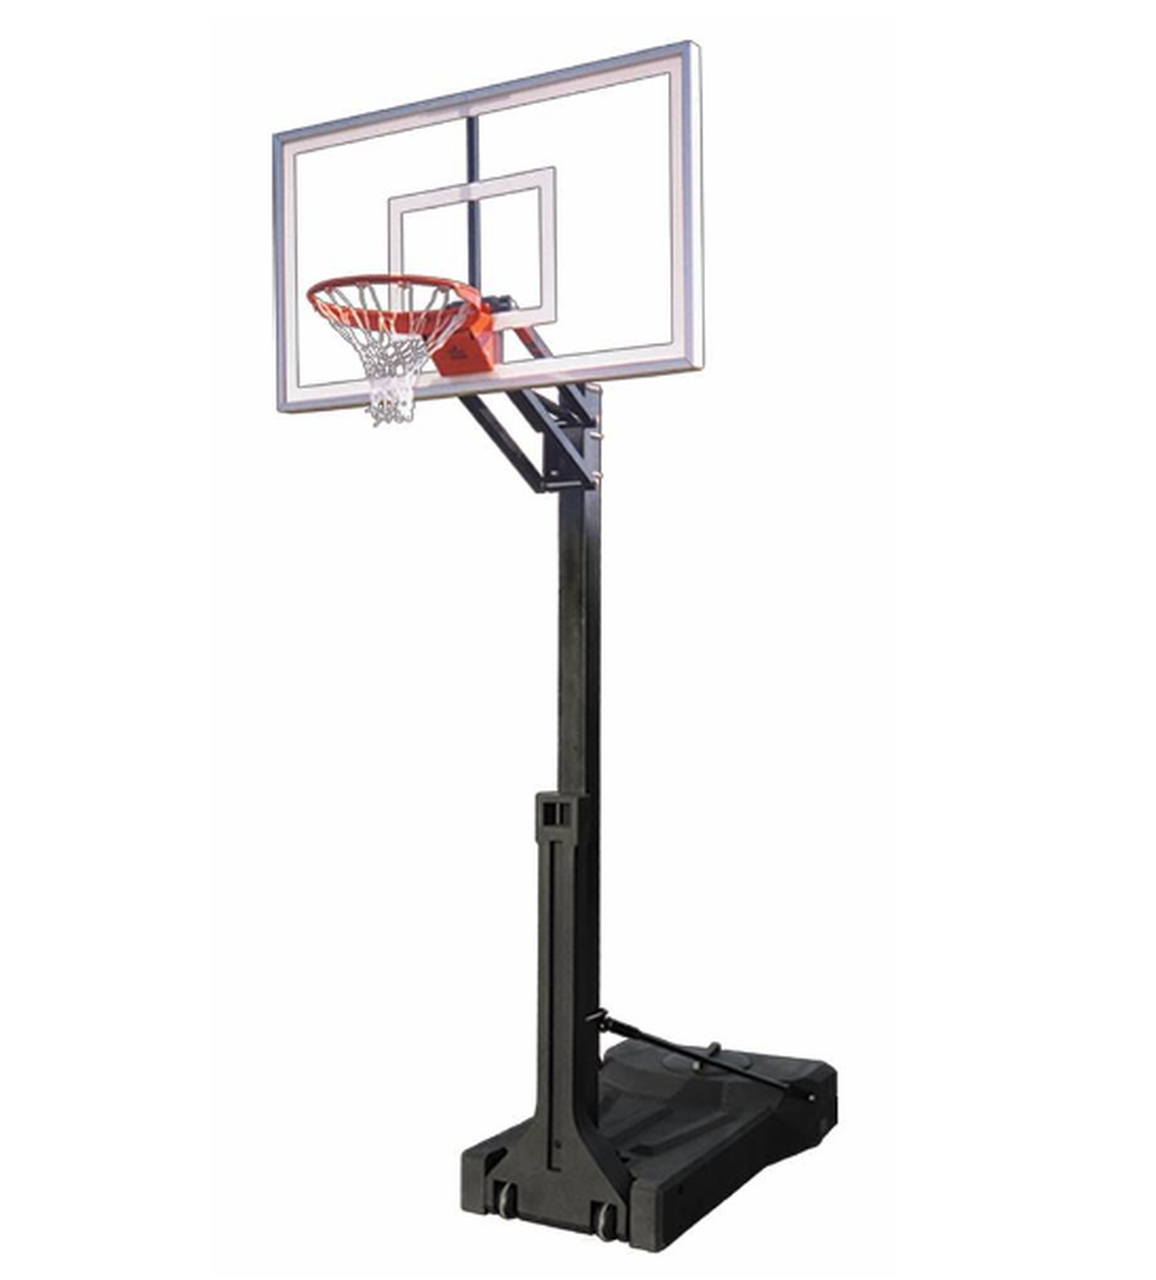 "First Team OmniChamp Turbo Portable Adjustable Basketball Hoop 36""x54"""